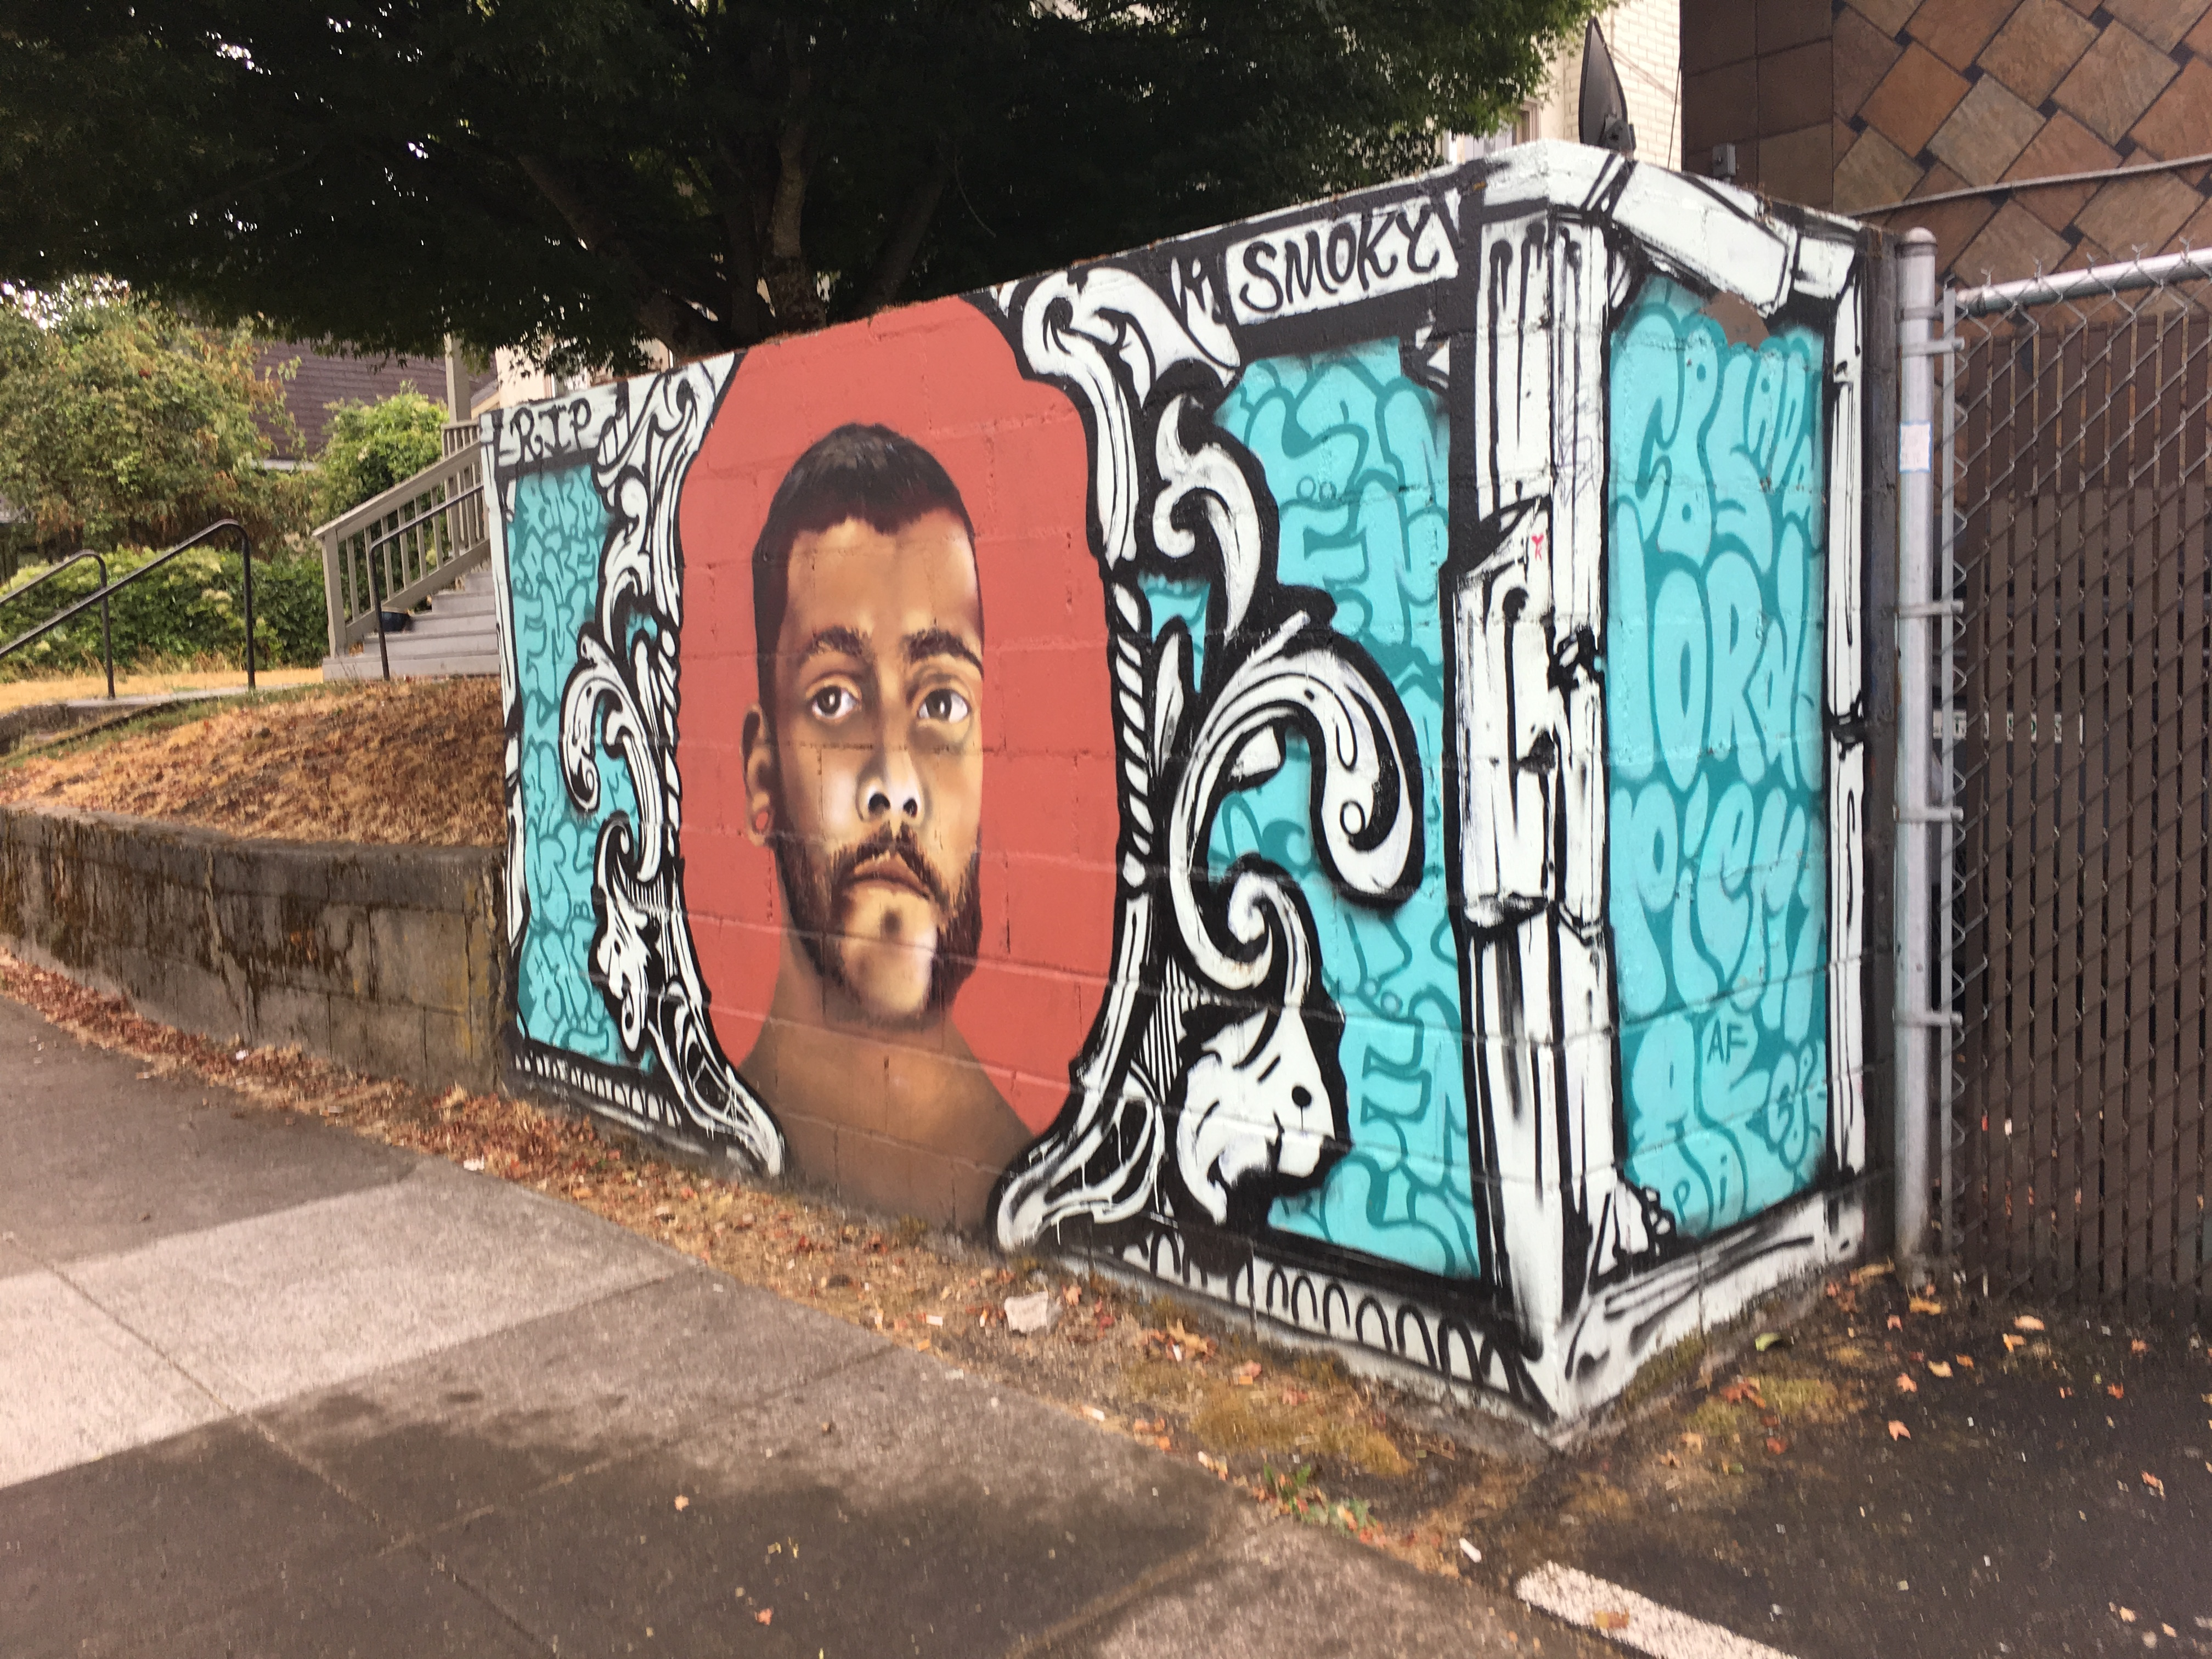 Street art in Portland memorializes young black men who've died.